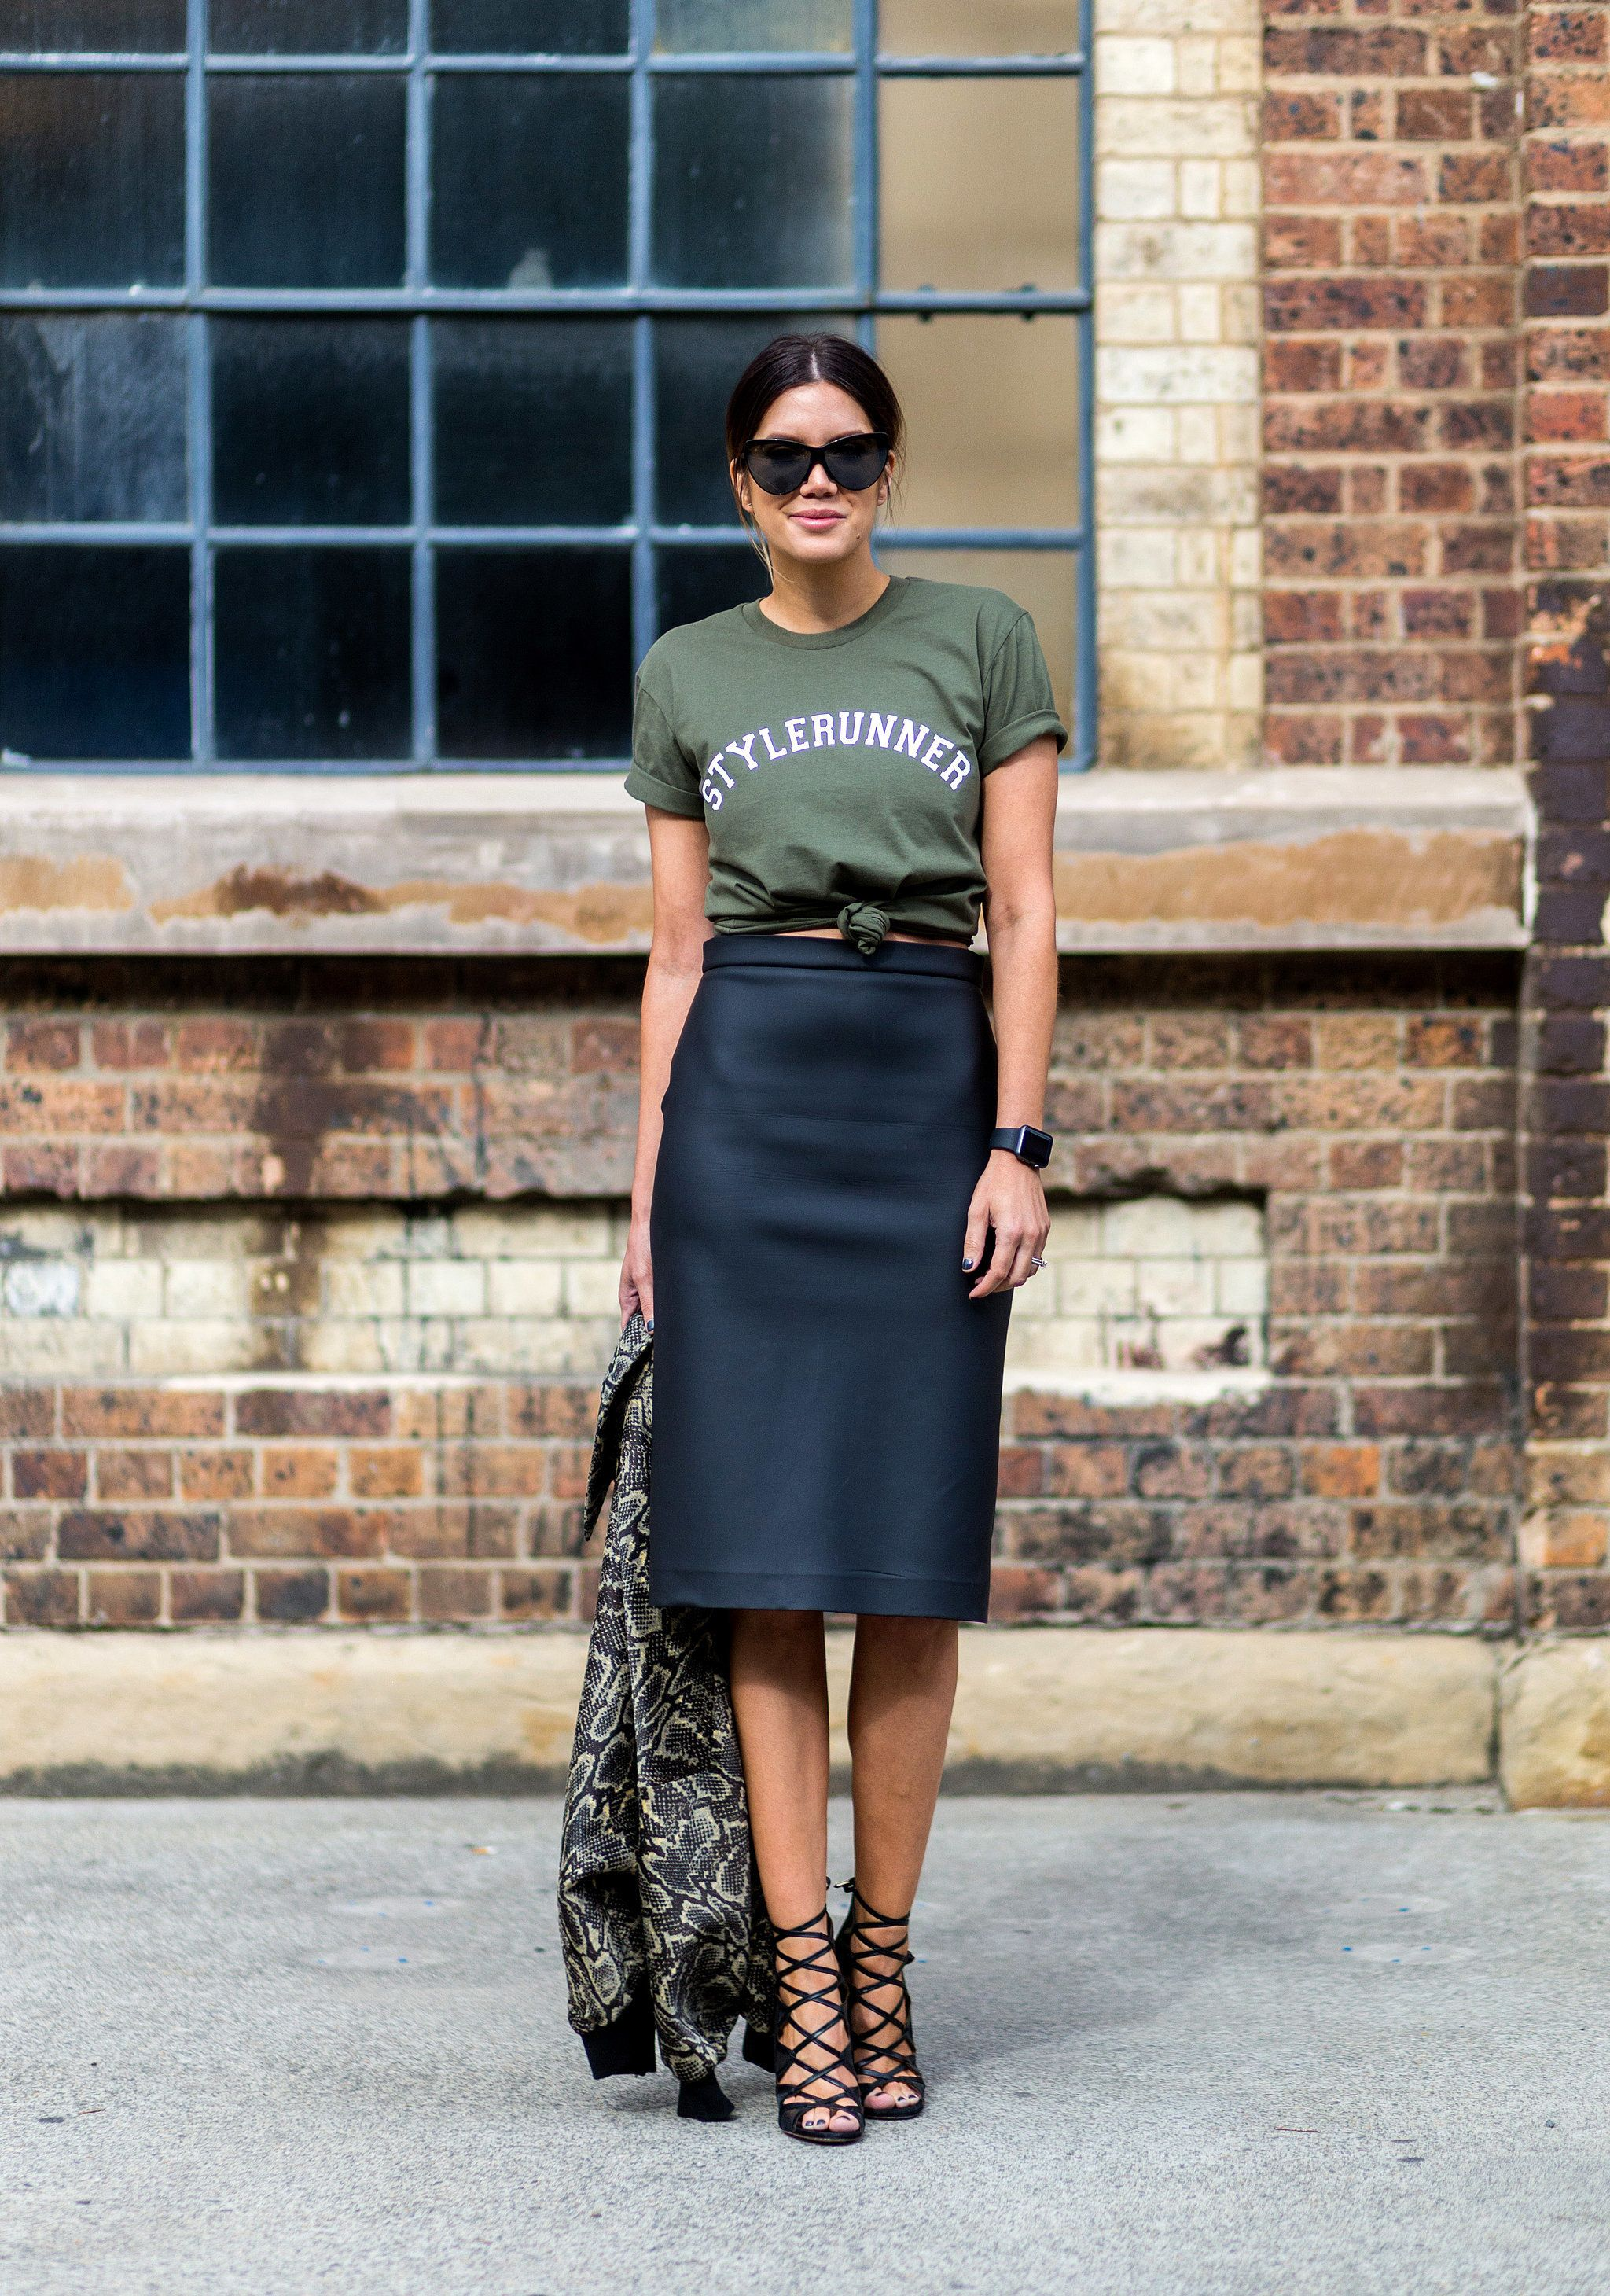 Skirt pencil outfits for teenagers